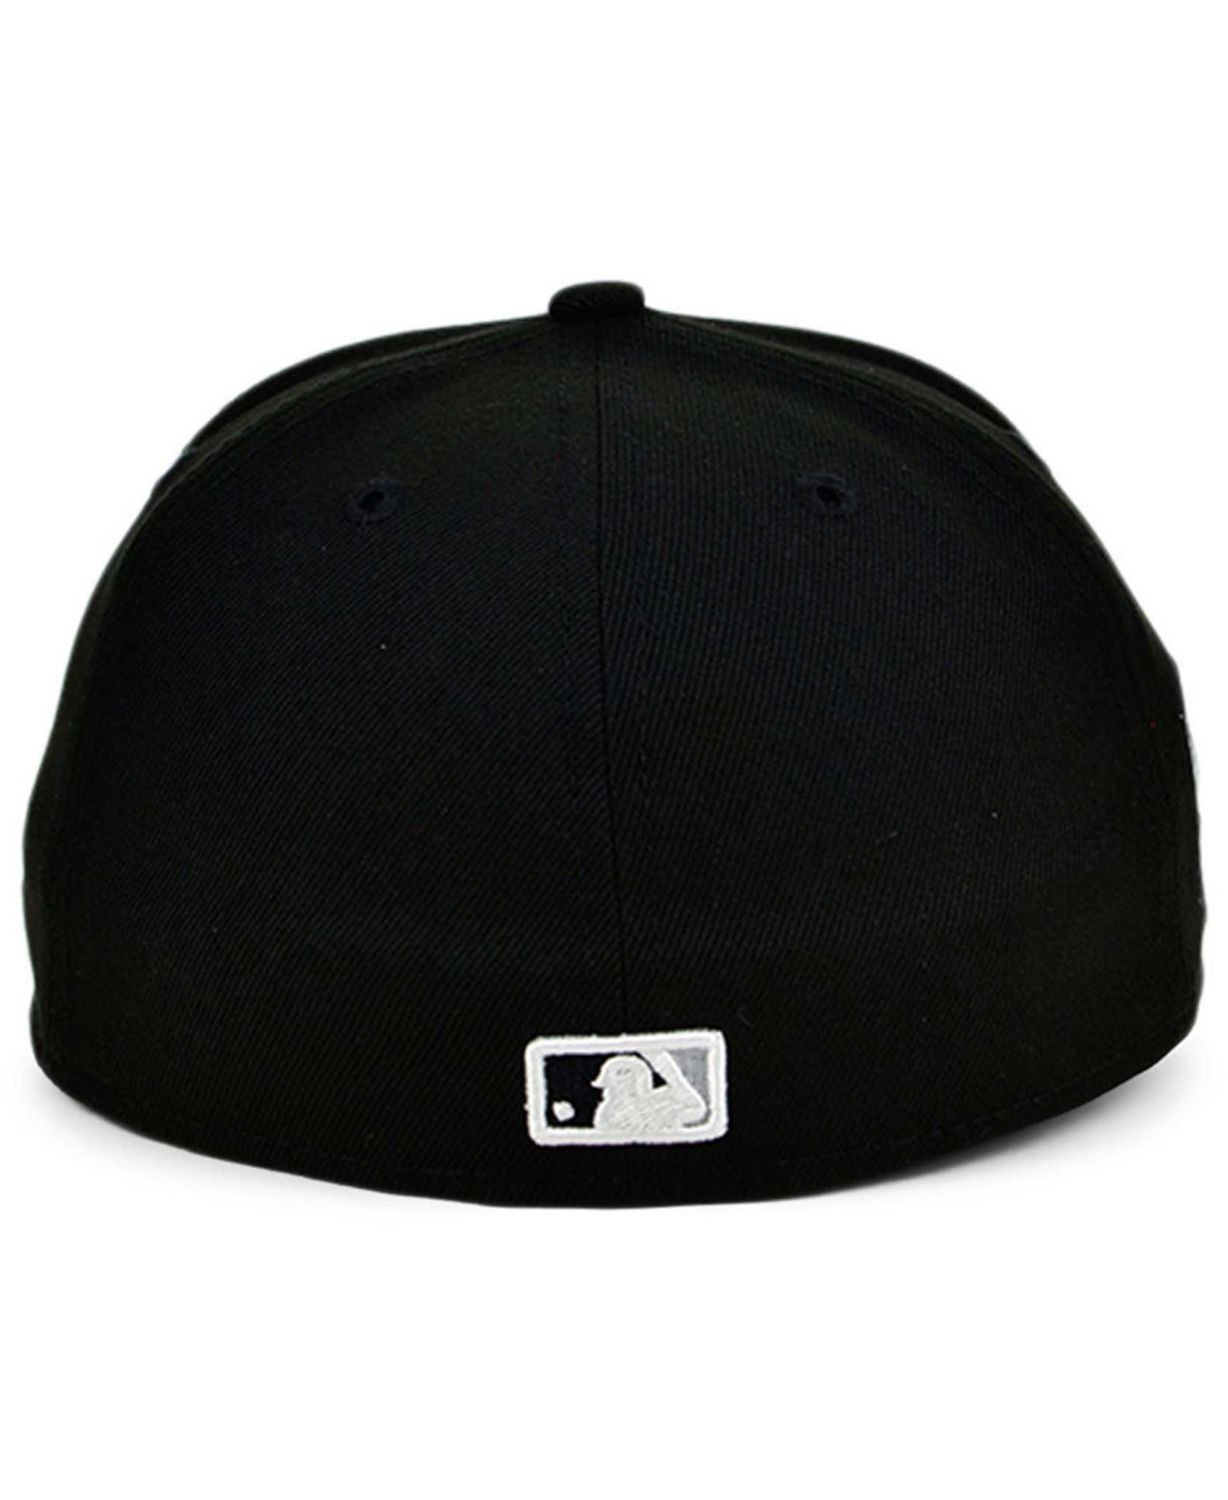 New Era Chicago White Sox Jackie Robinson 50th Patch 59FIFTY Cap & Reviews - MLB - Sports Fan Shop - Macy's